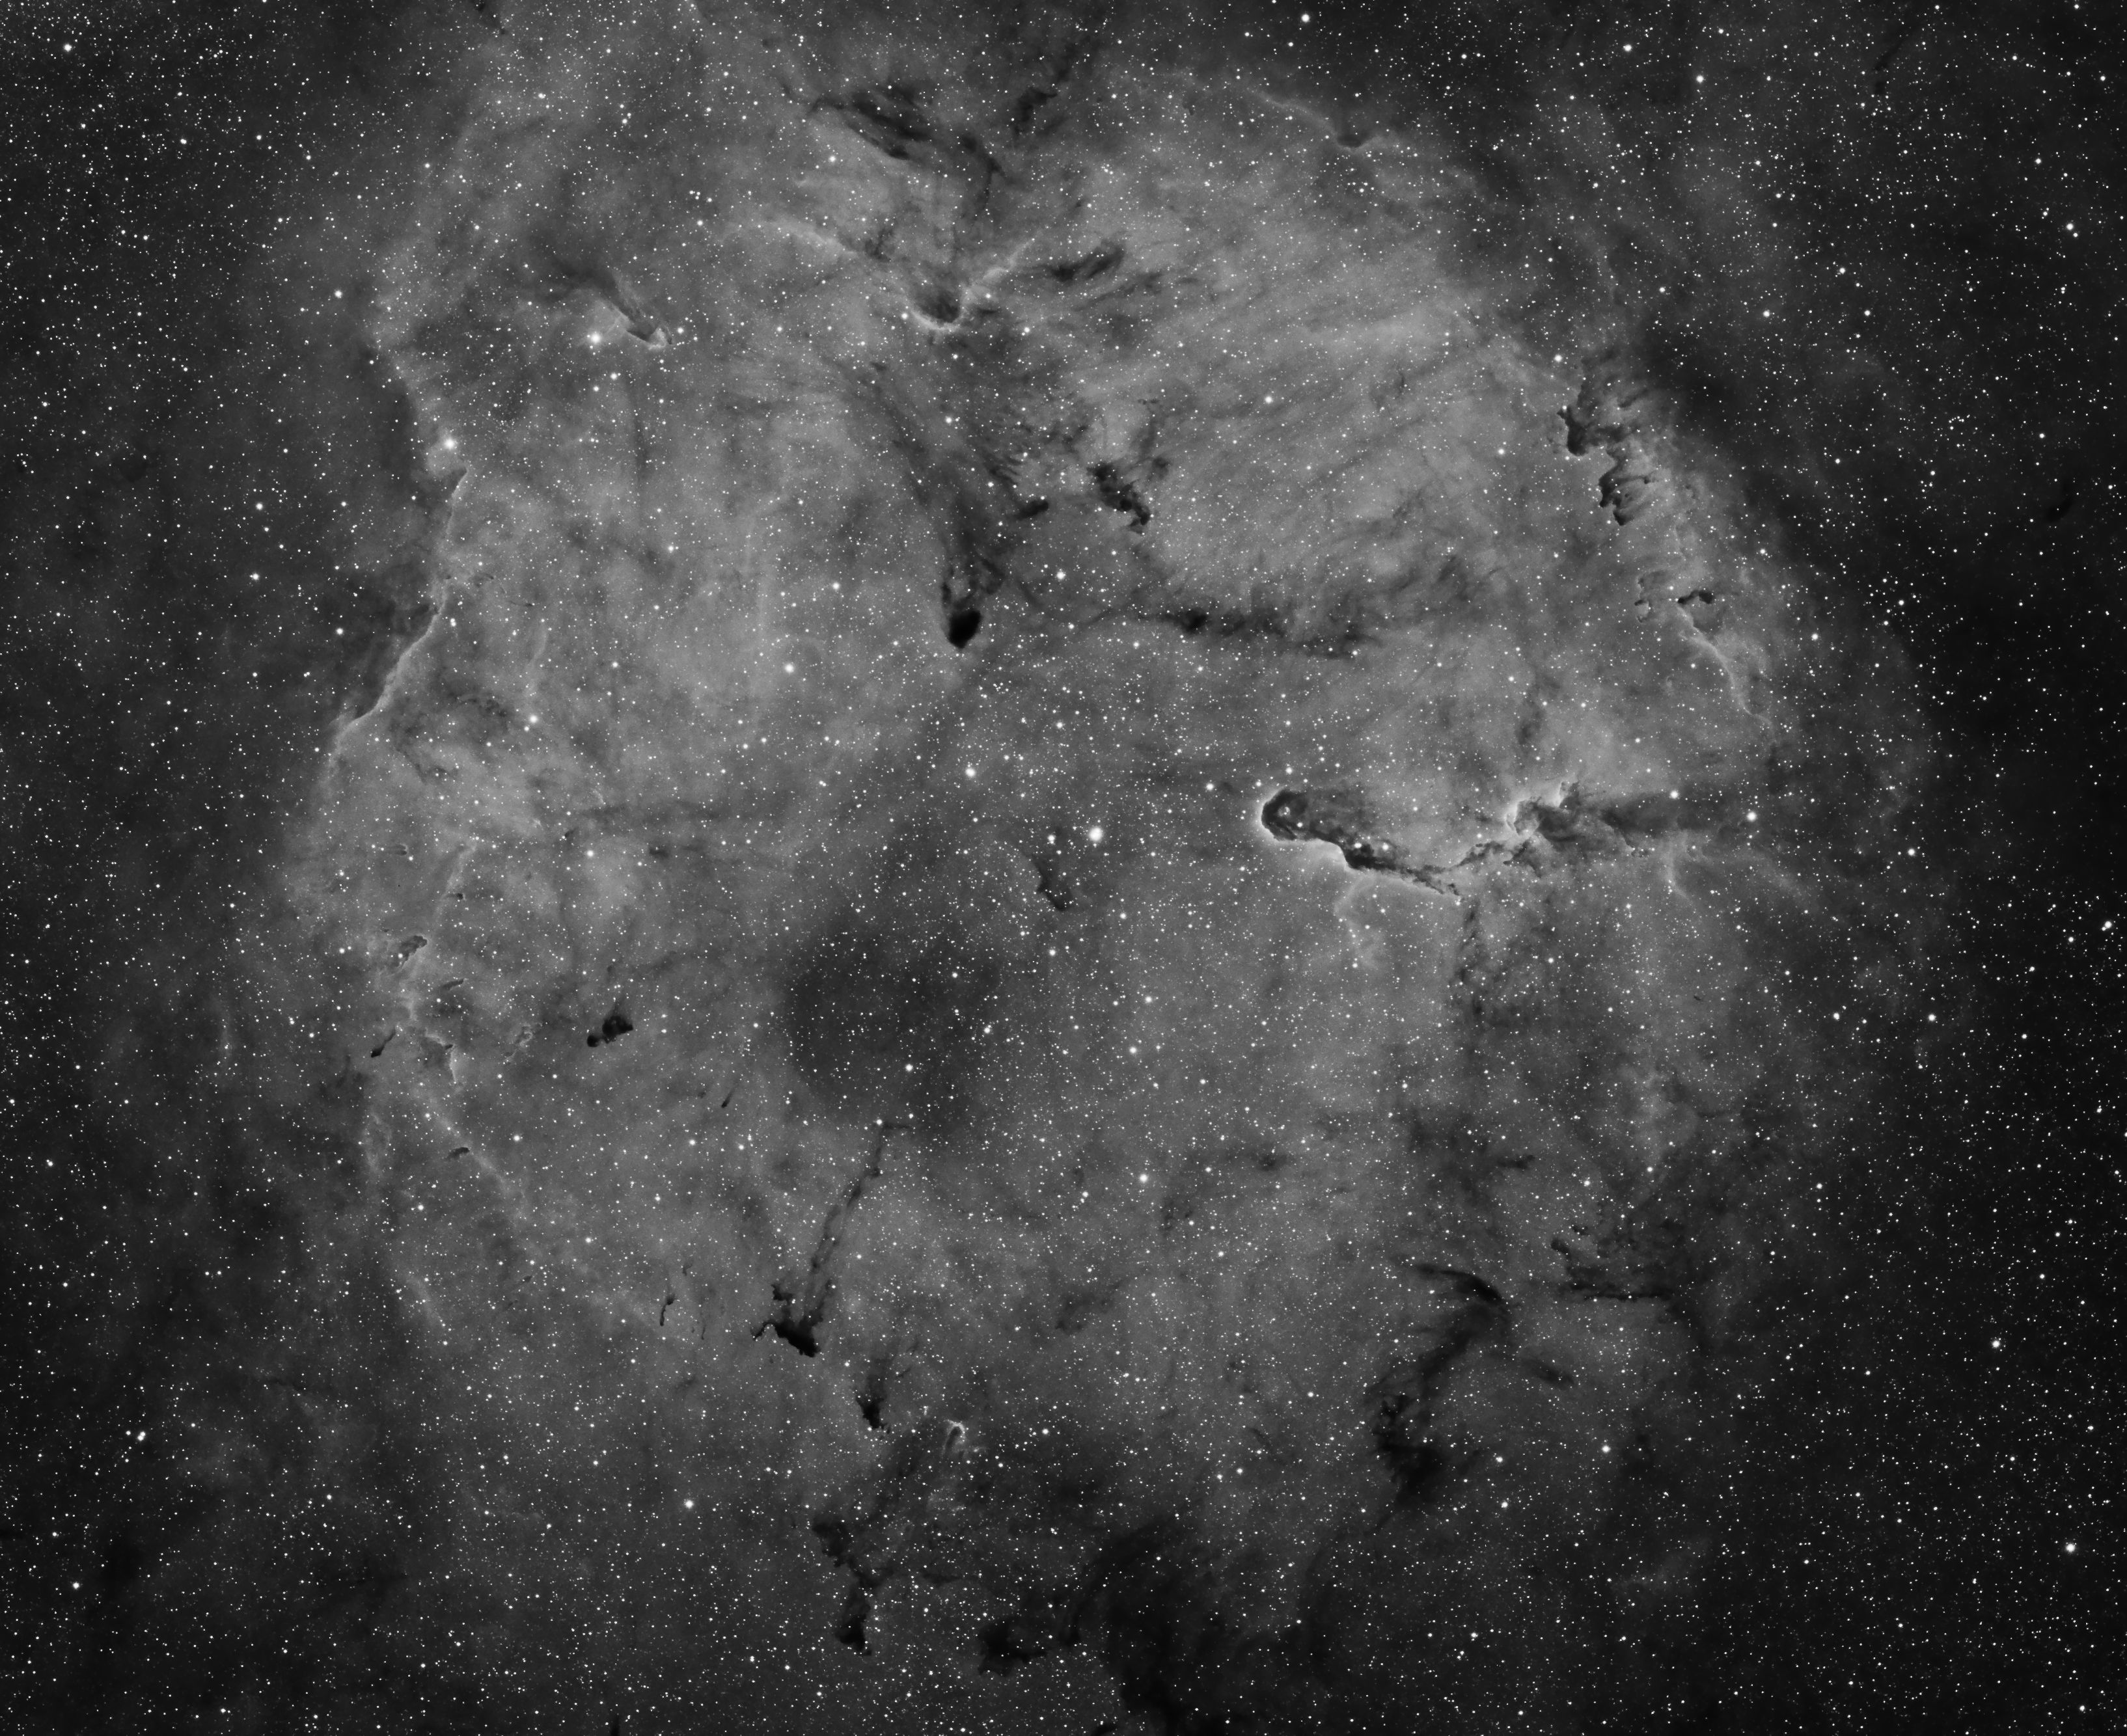 IC1396.jpg -          texto_bright    Object:IC1396 & Elephant trunck   Date:3-10-2008   Observingsite: Observatory 16b, Àger   Telescope: TakahashiFSQ-106N  @ f/5 on EM-400 mount   Camera:SBIG STL-11000M  @ -20C   Filters: Astrodon H alpha 6 nm   Exposure:3 x 30 min.  Totalexposure: 1,5 h     Guiding: Camera guide chip     Software:Guide & camera control: CCDSoft. Processing: PixInsight 1.2 Comment: